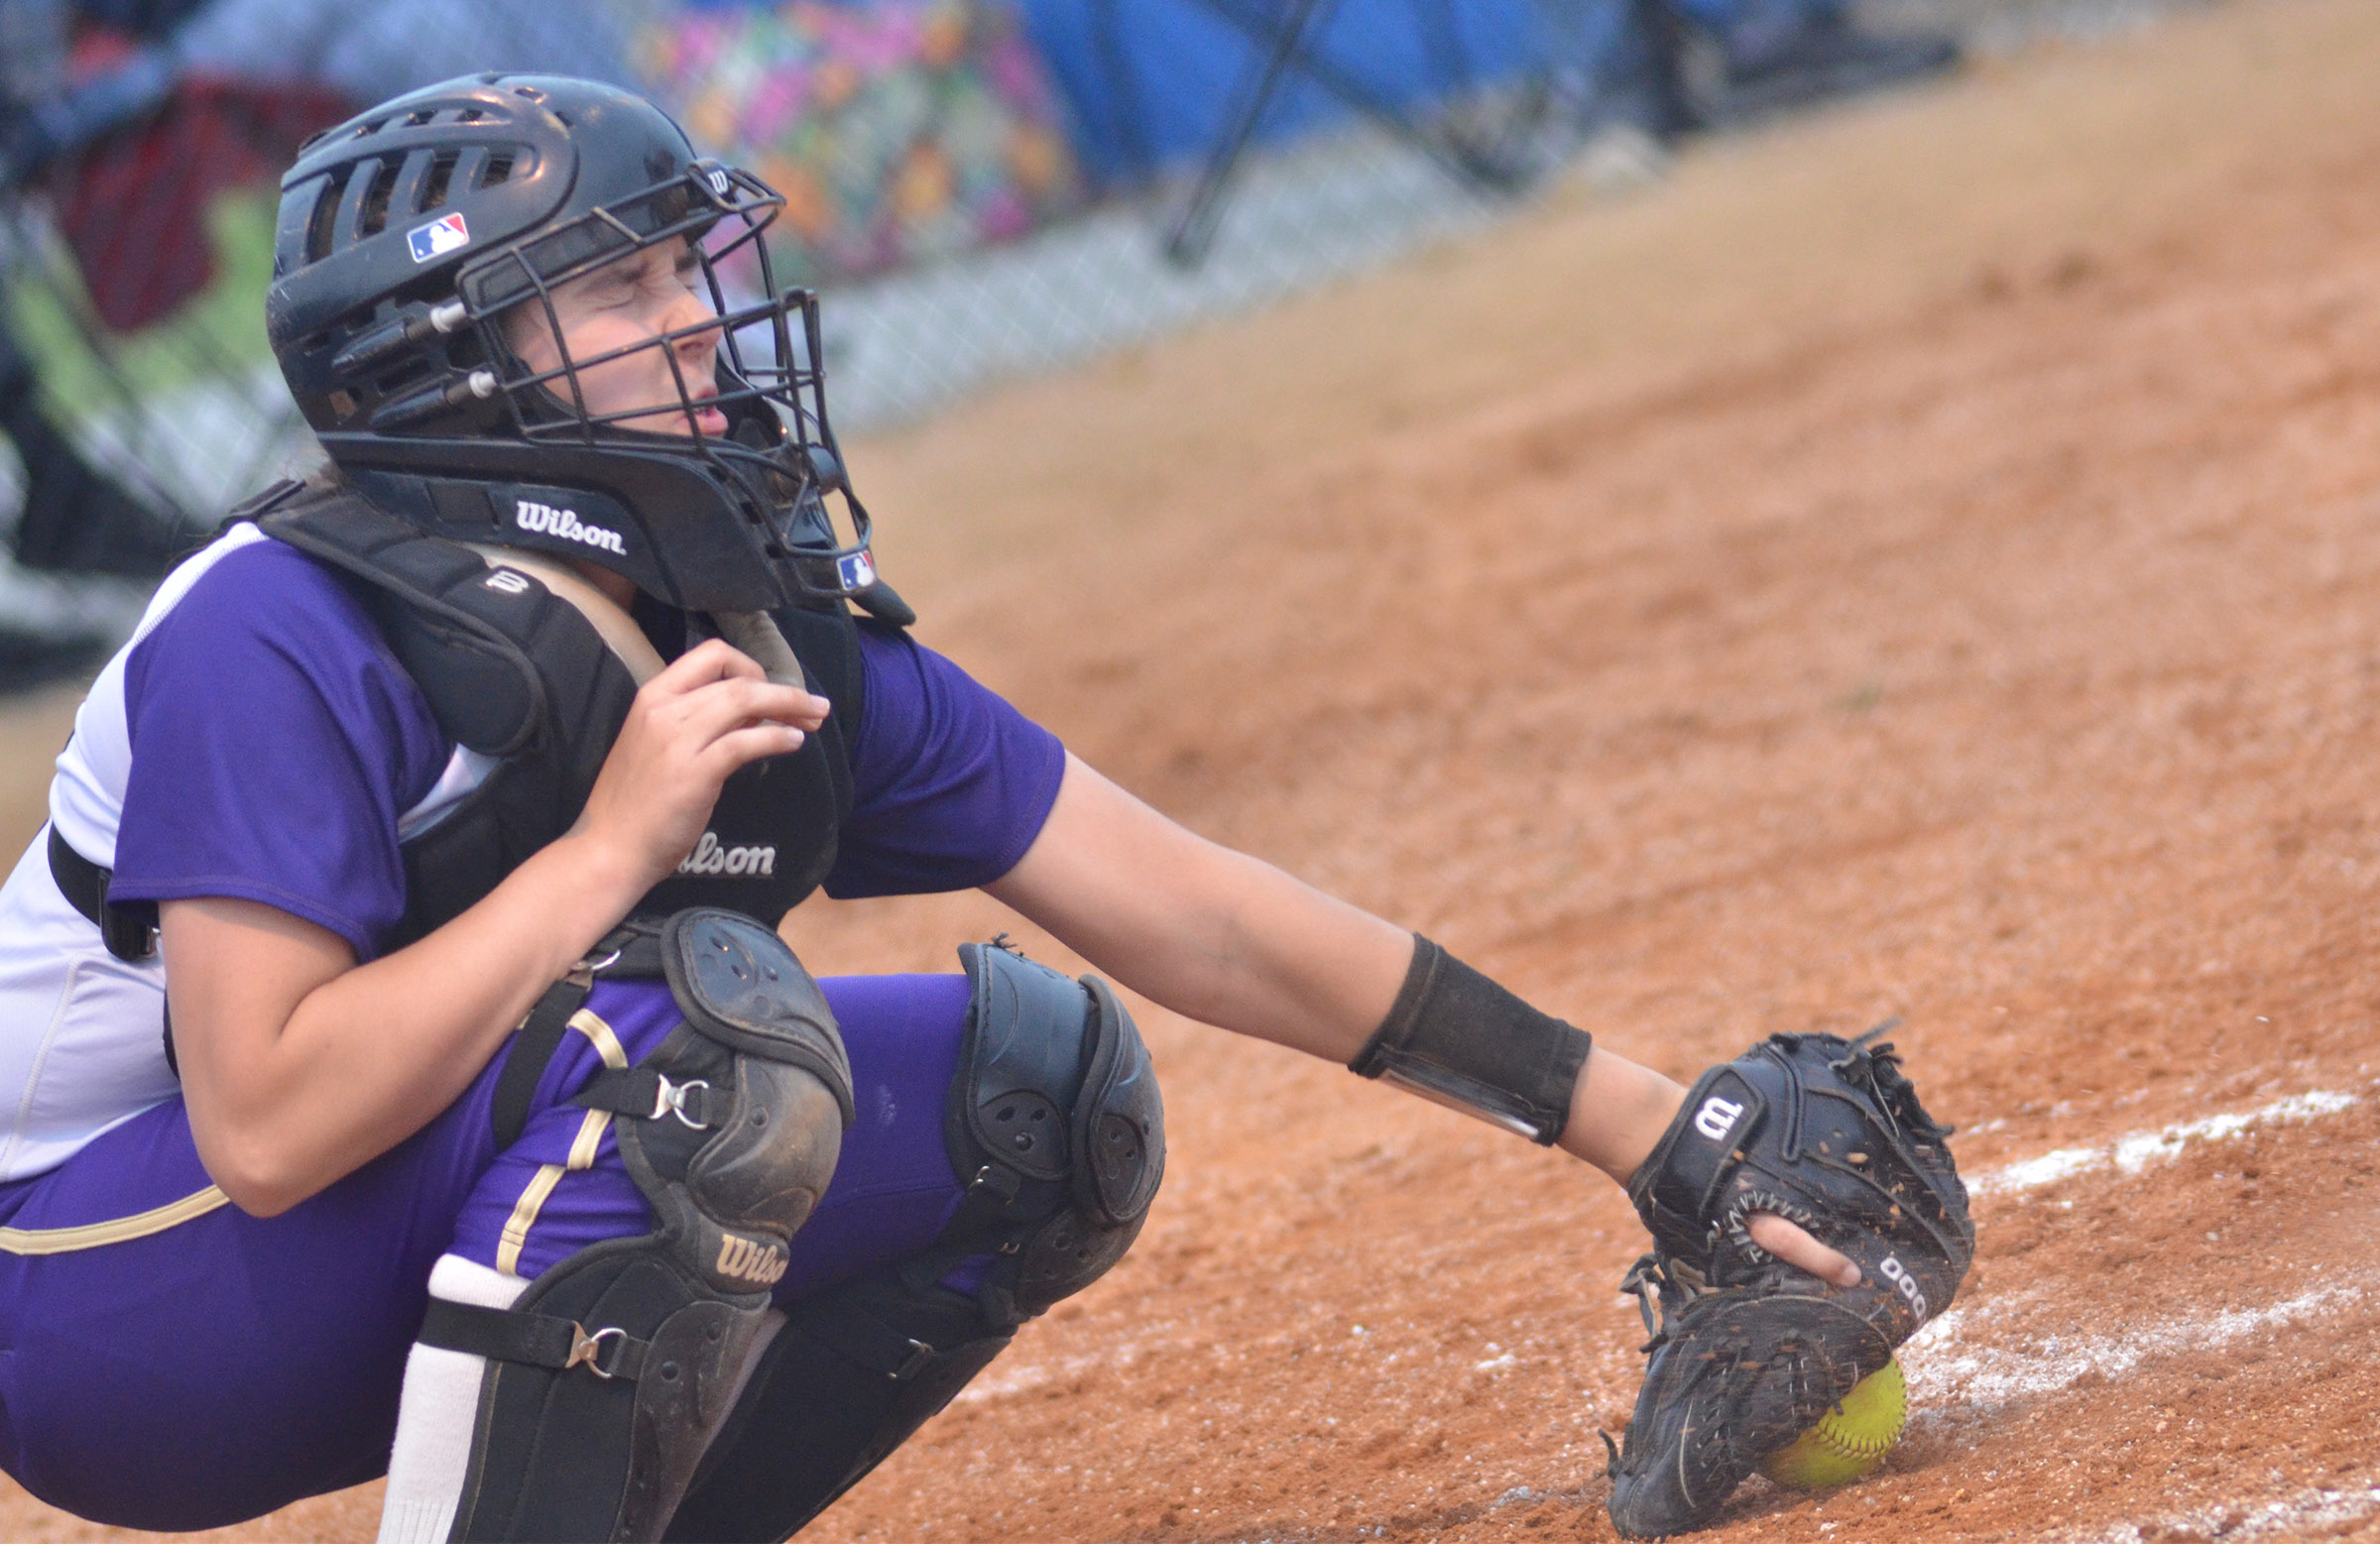 Campbellsville Middle School eighth-grader closes her eyes as she catches the ball.